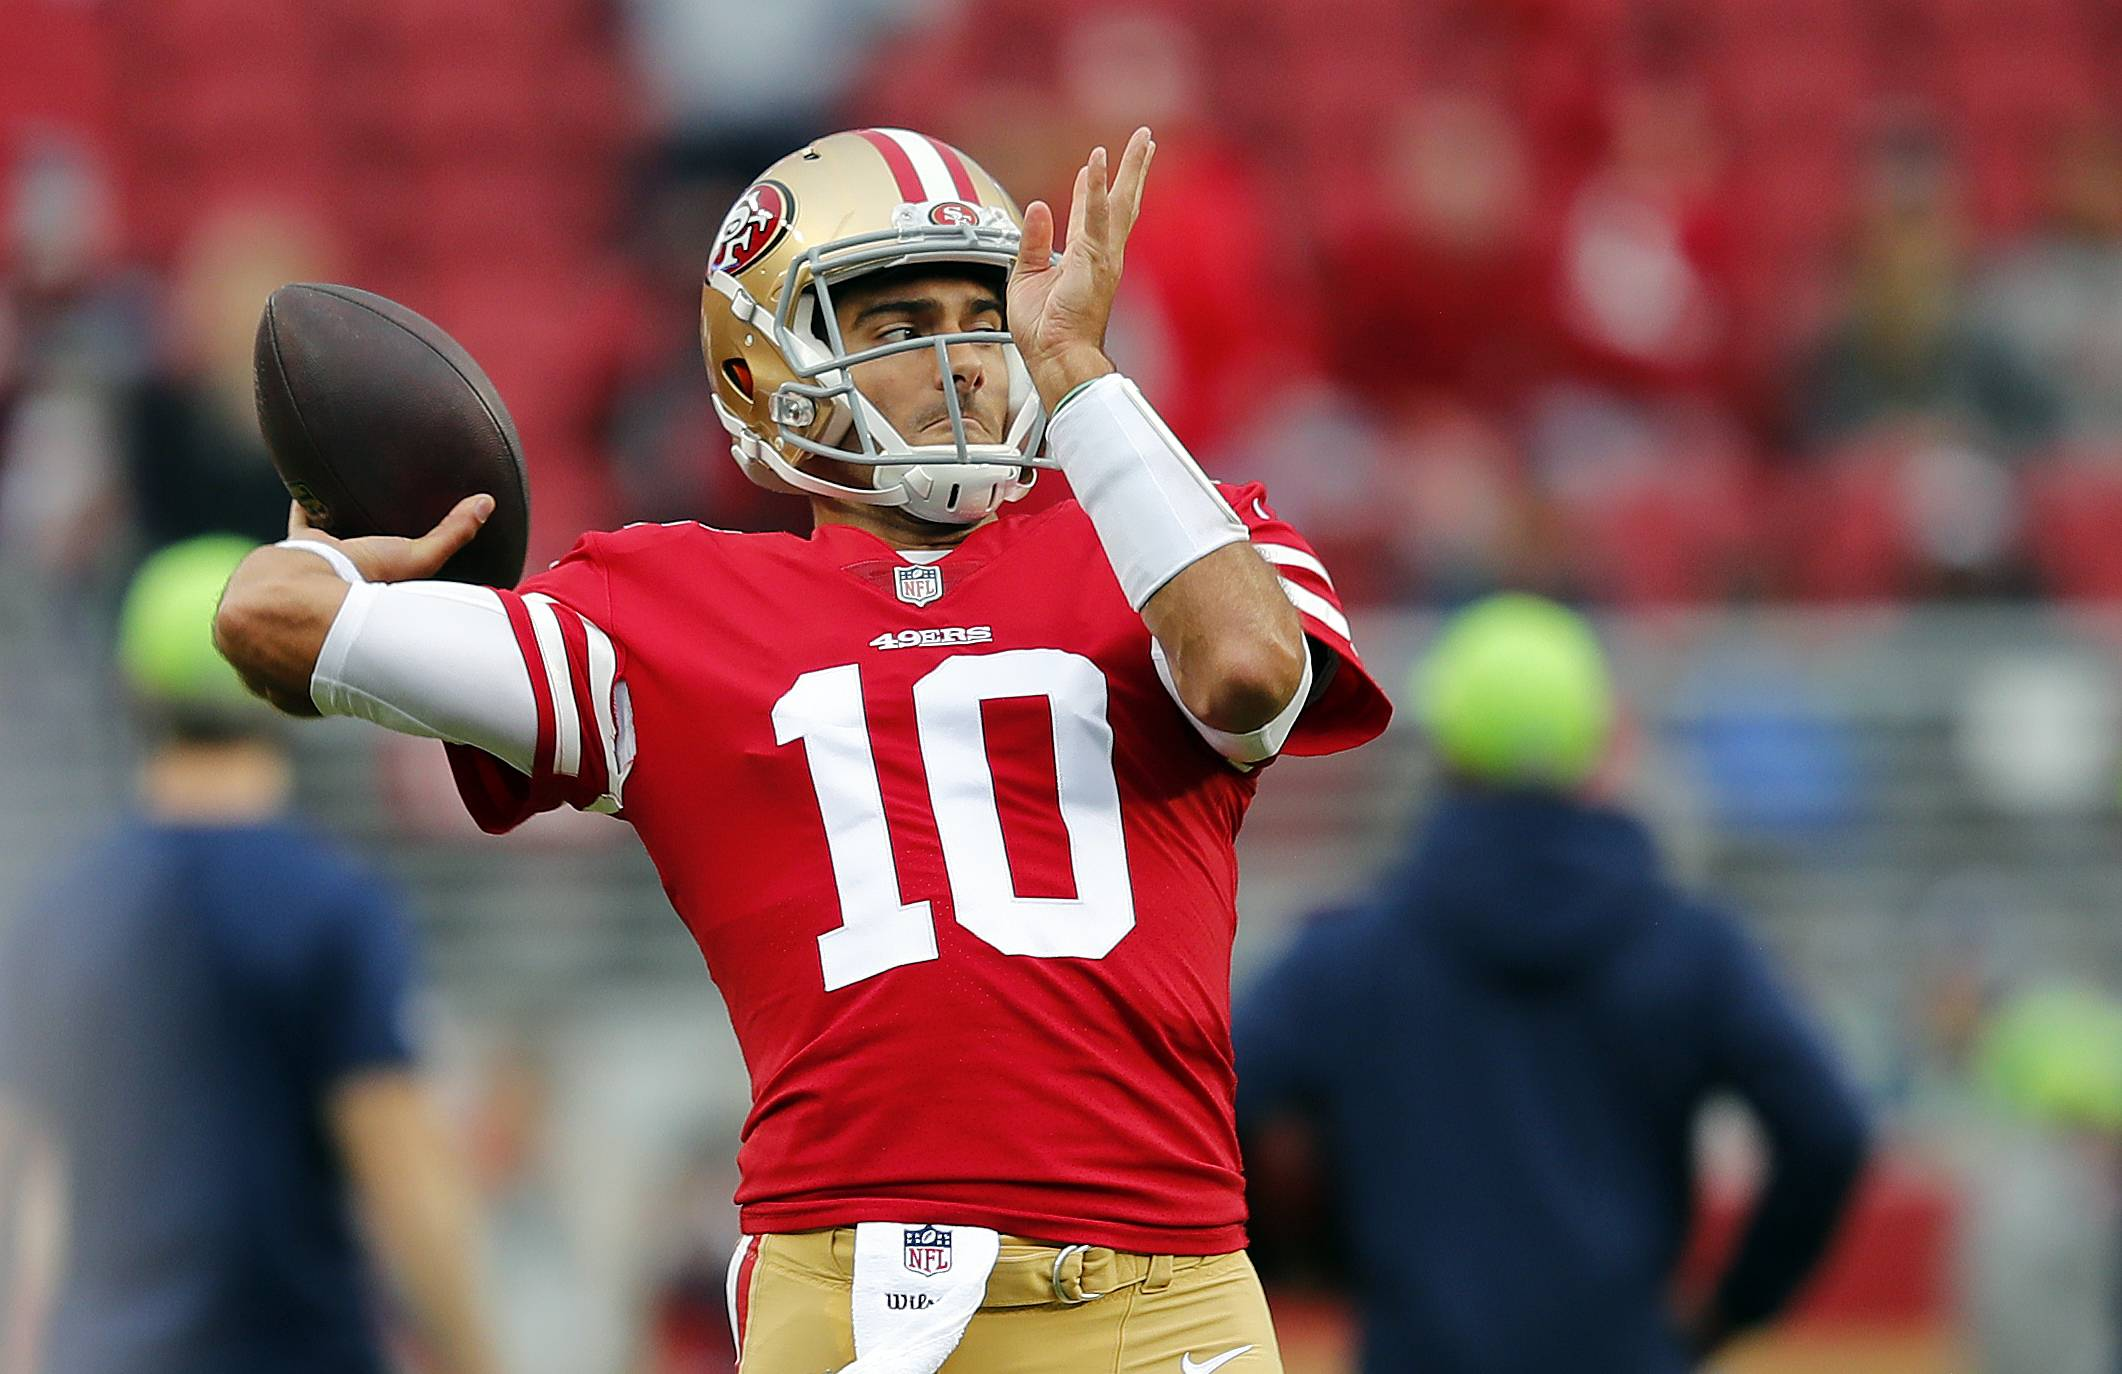 San Francisco 49ers quarterback Jimmy Garoppolo warms up before an NFL football game against the Seattle Seahawks Sunday, Nov. 26, 2017, in Santa Clara, Calif. (AP Photo/John Hefti)